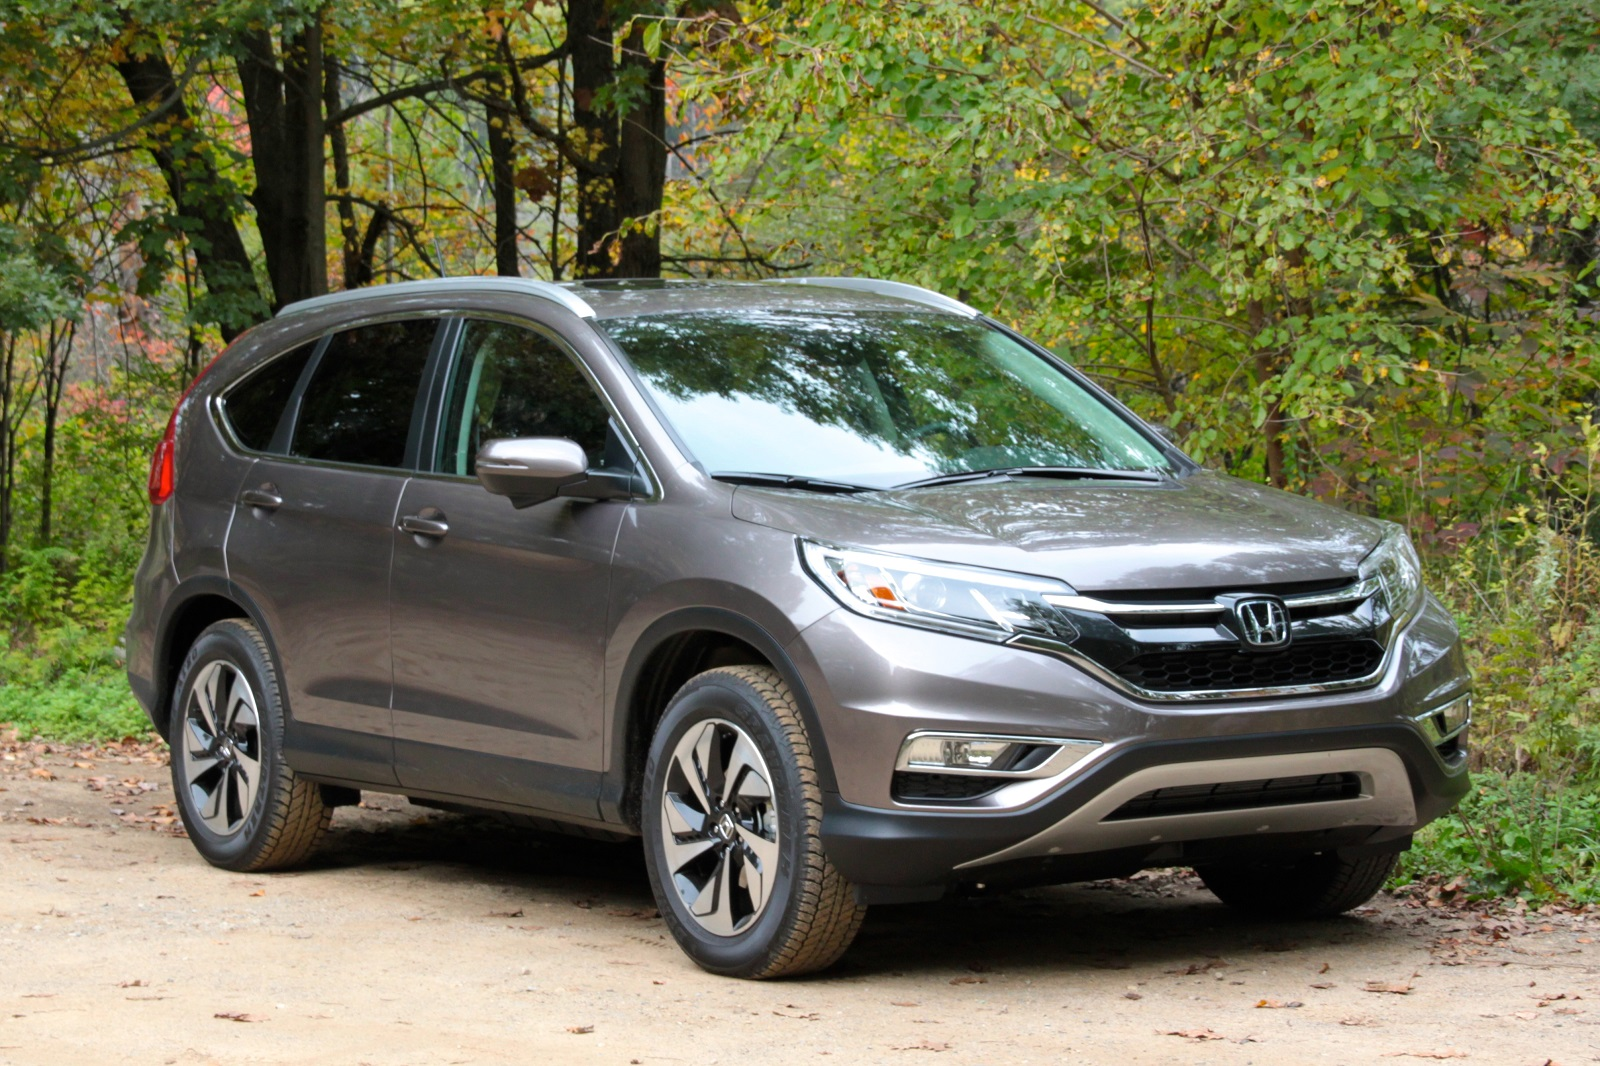 Best Gas Mileage Suv U003eu003e 2015 Honda CR V: Gas Mileage Test Of